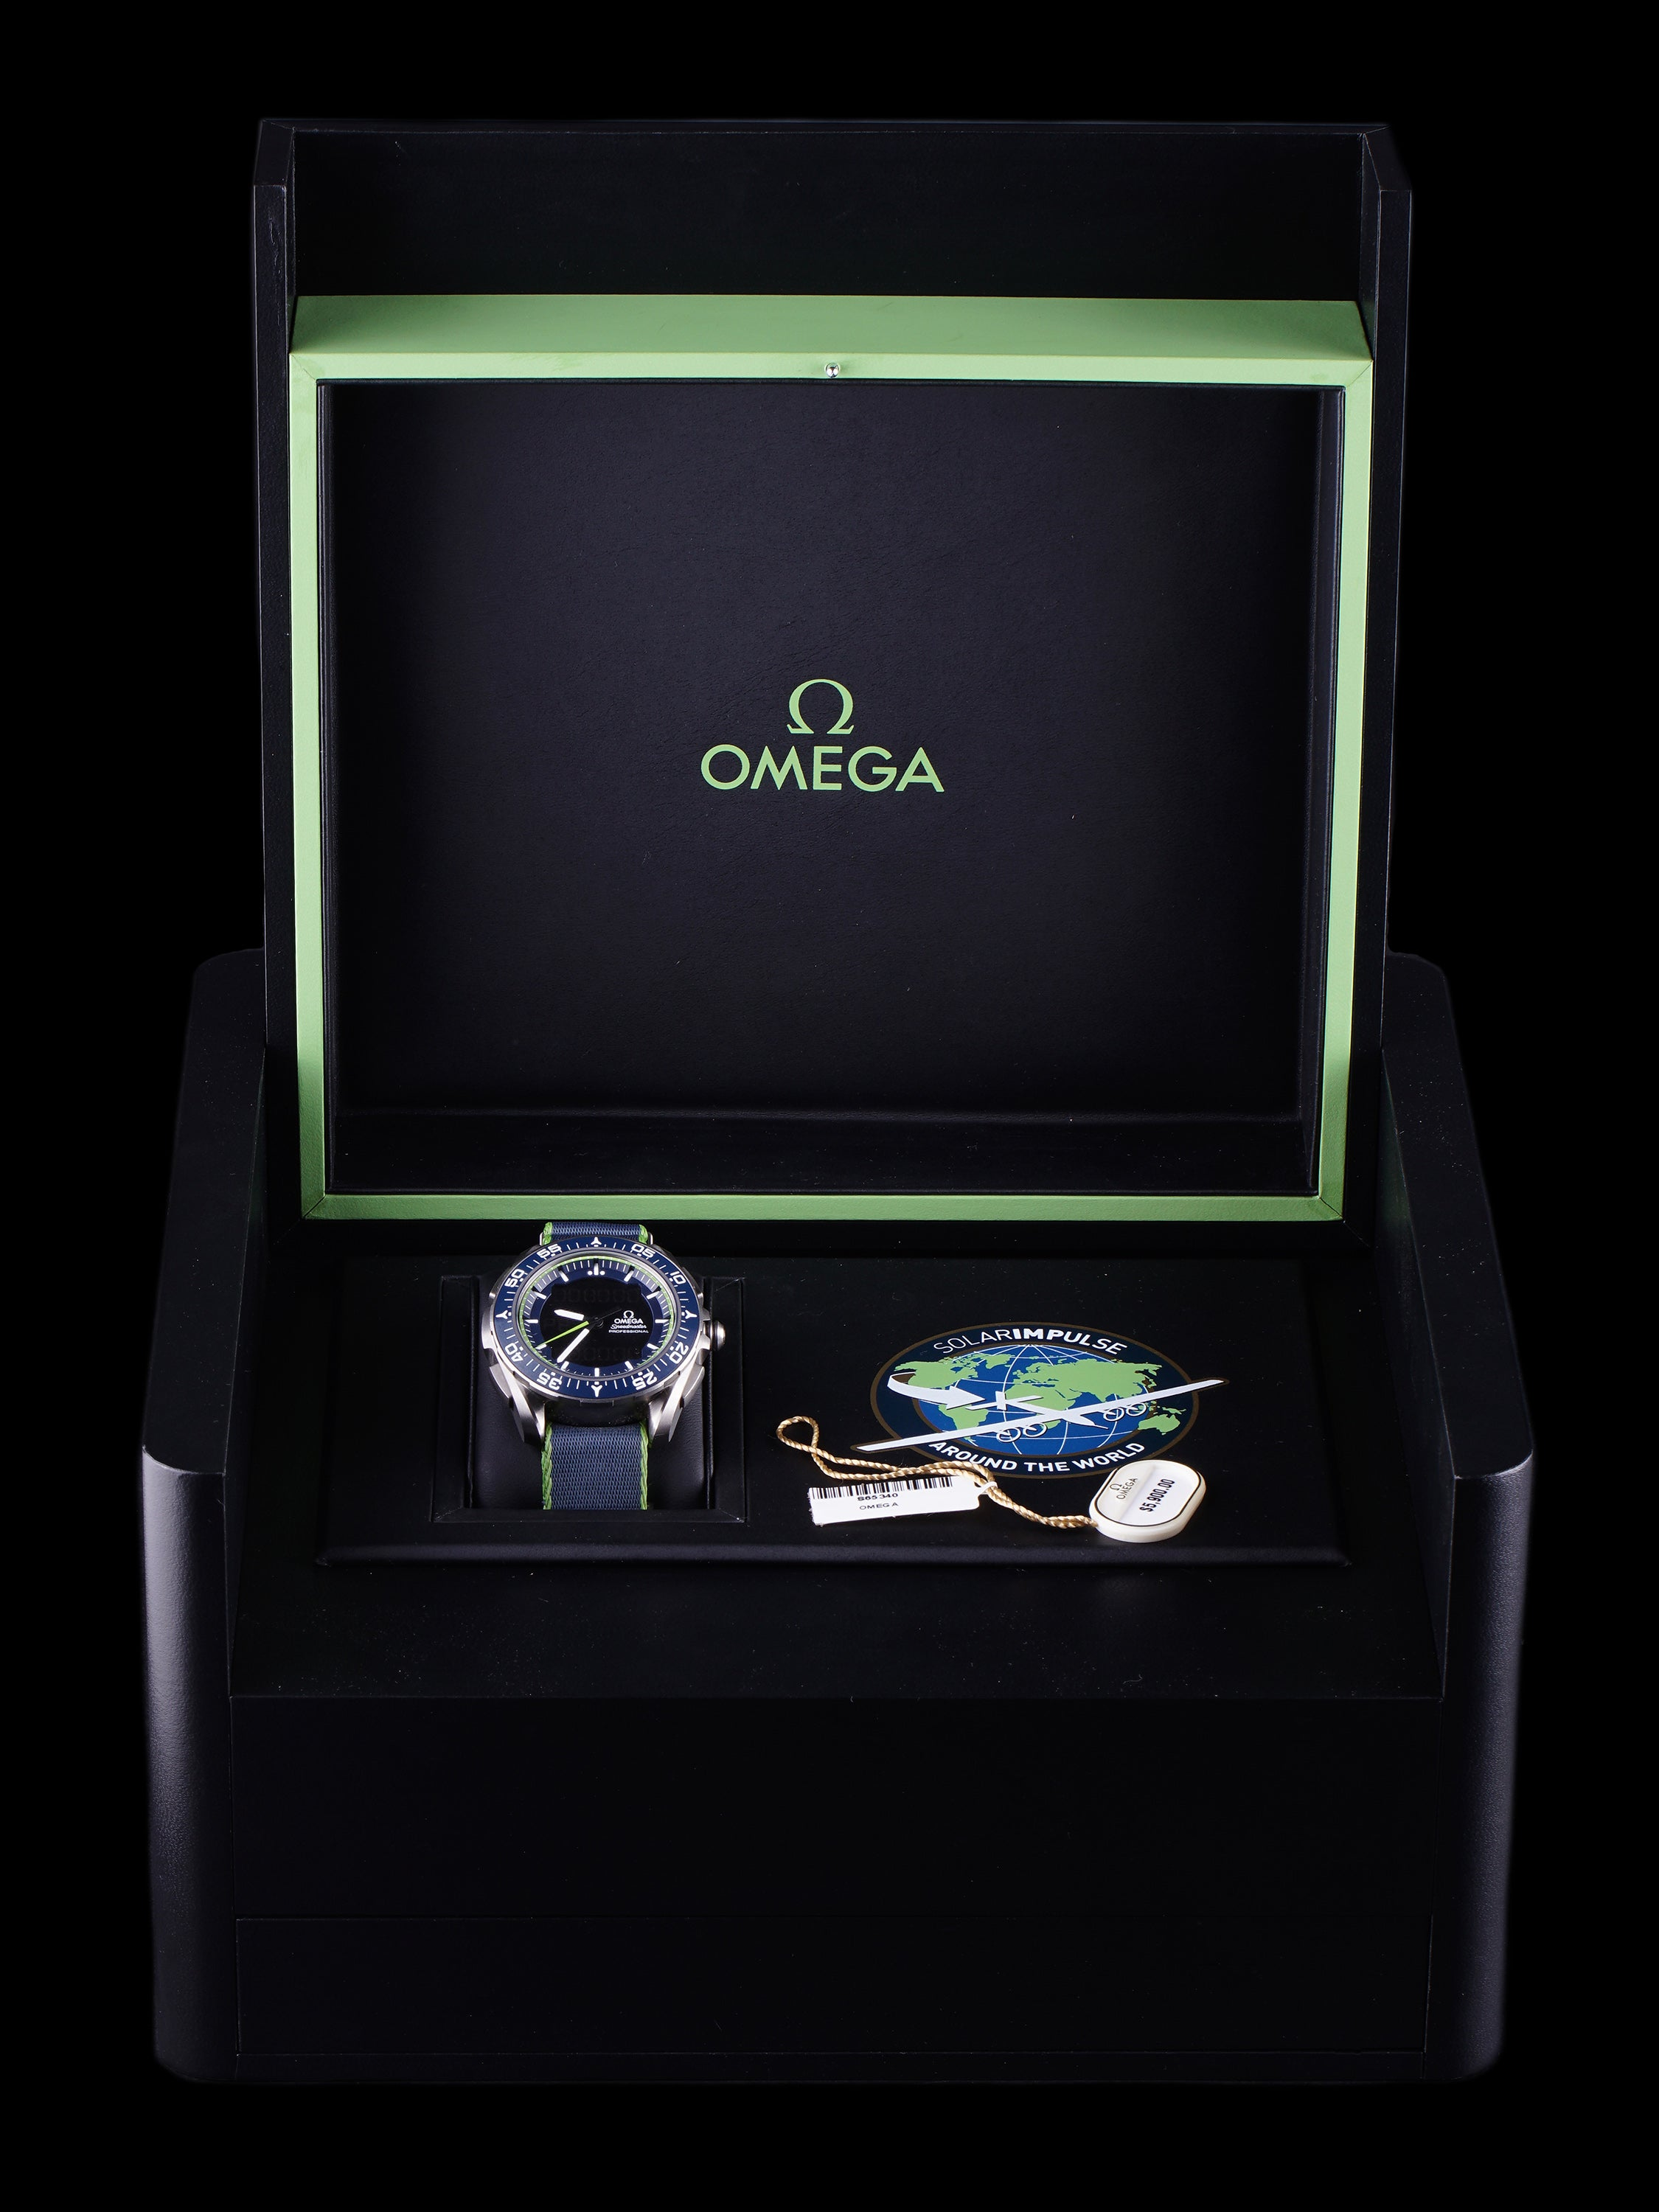 Omega Speedmaster X-33 Skywalker Solar Impulse Limited Edition